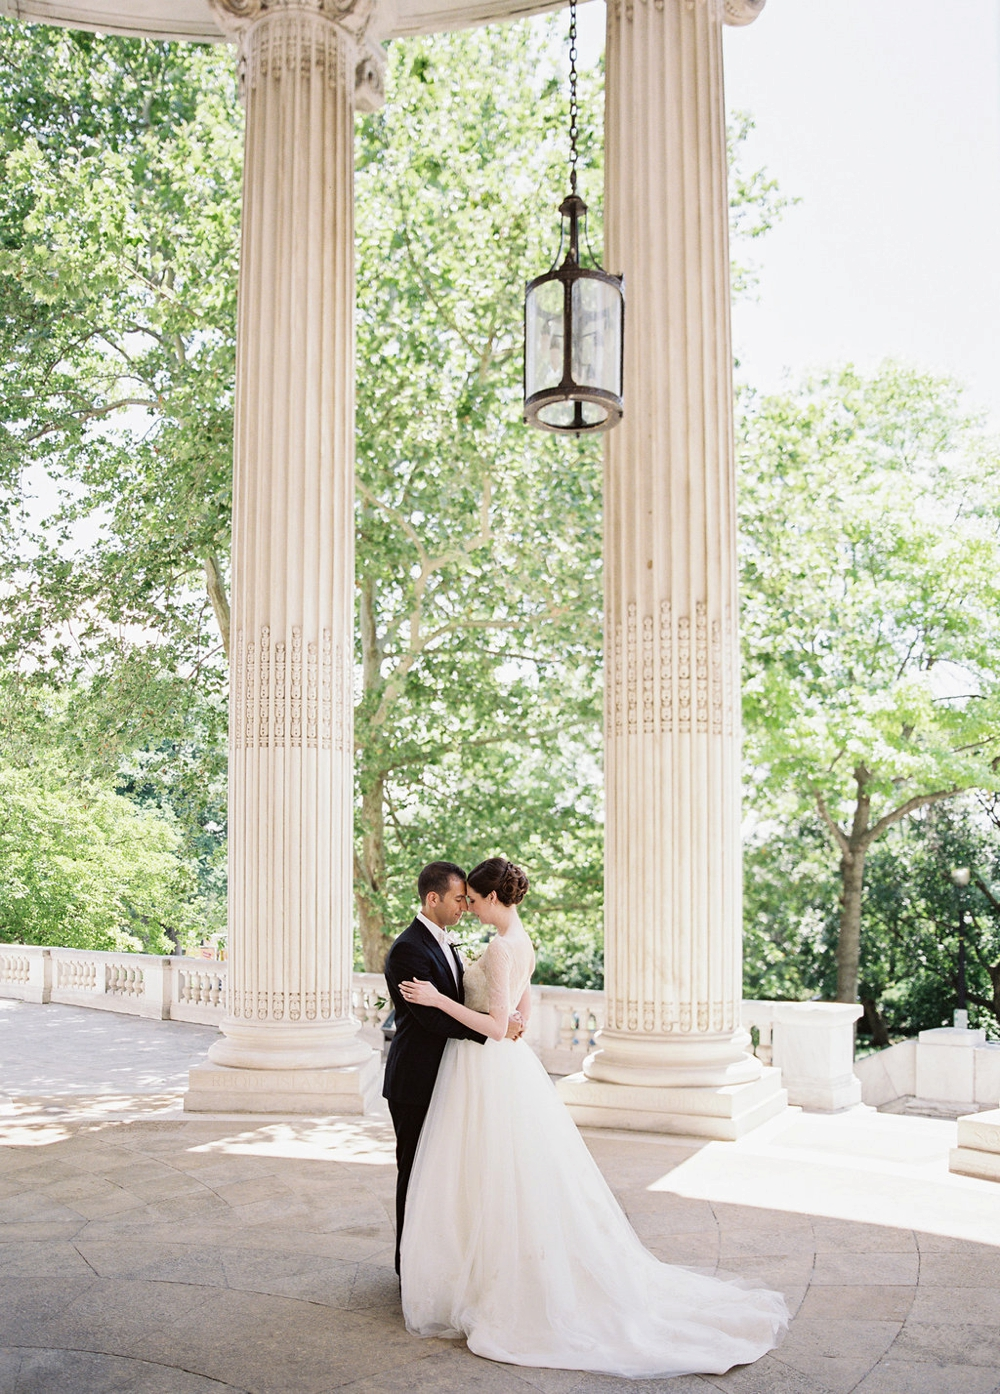 Vicki Grafton Photography - Fine Art DC Virginia Charlottesville Film Wedding Photographer_0028.jpg